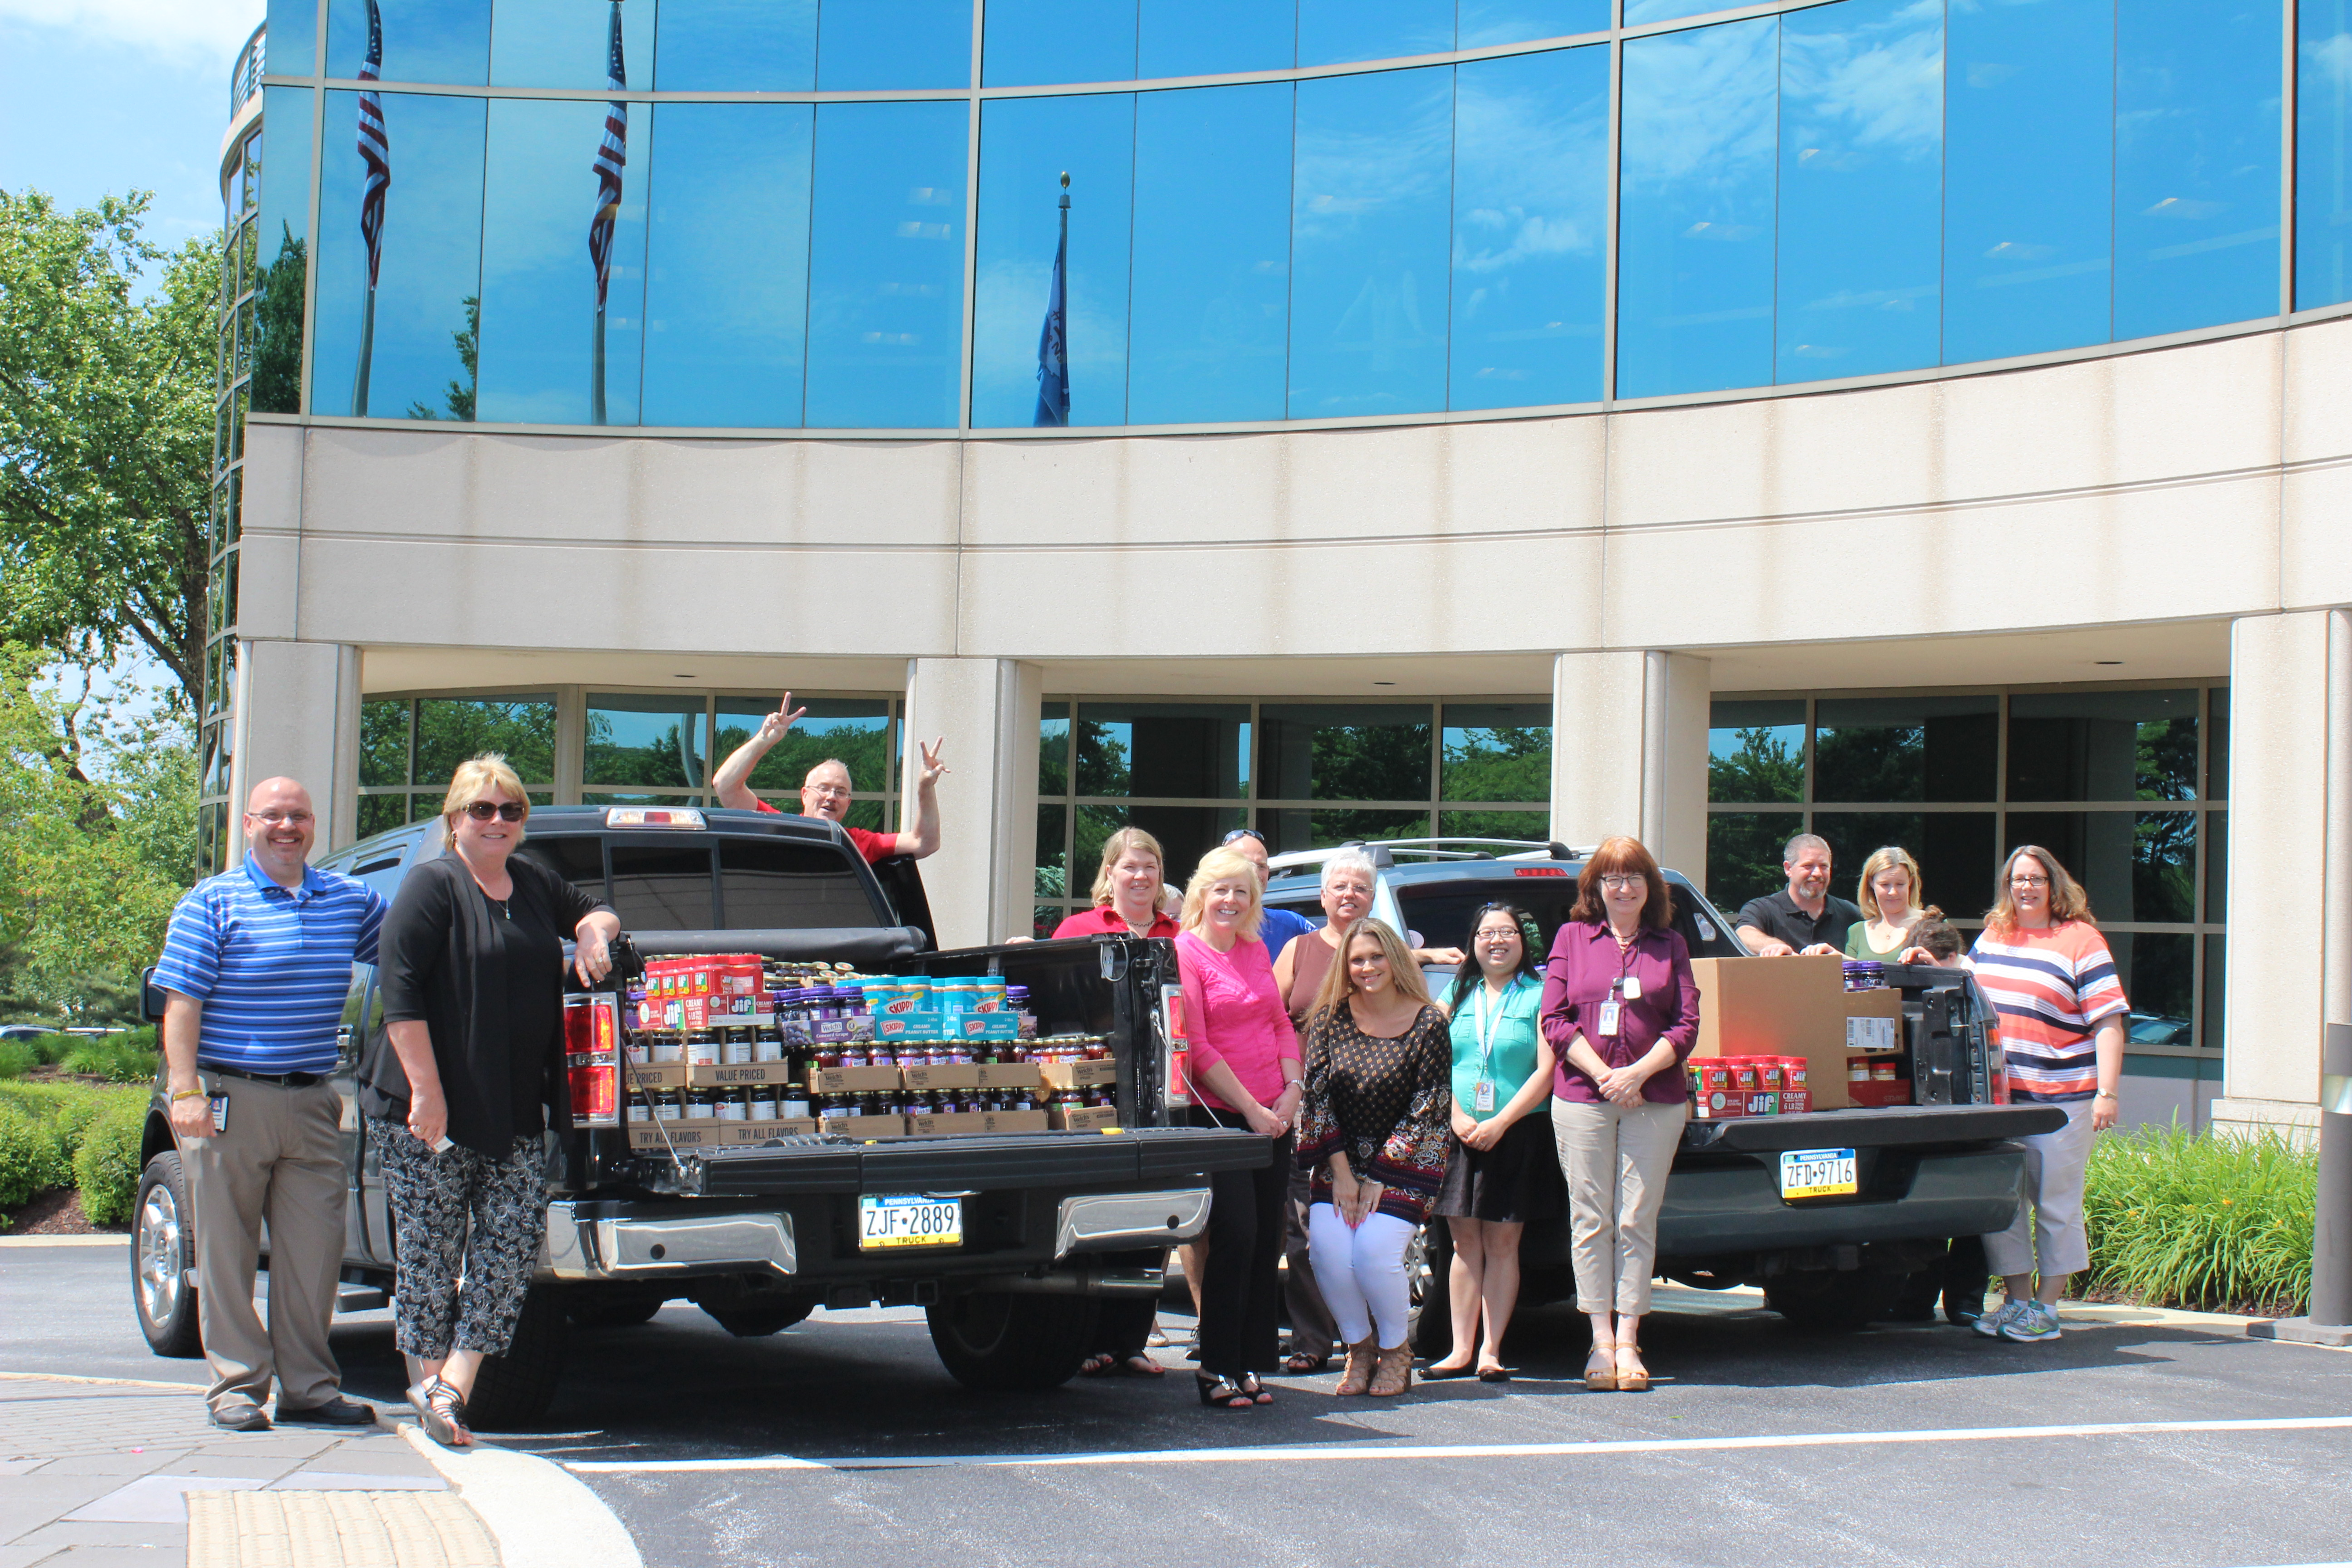 Citadel Employees Contribute More than 2,500 Pounds to PB&J Drive